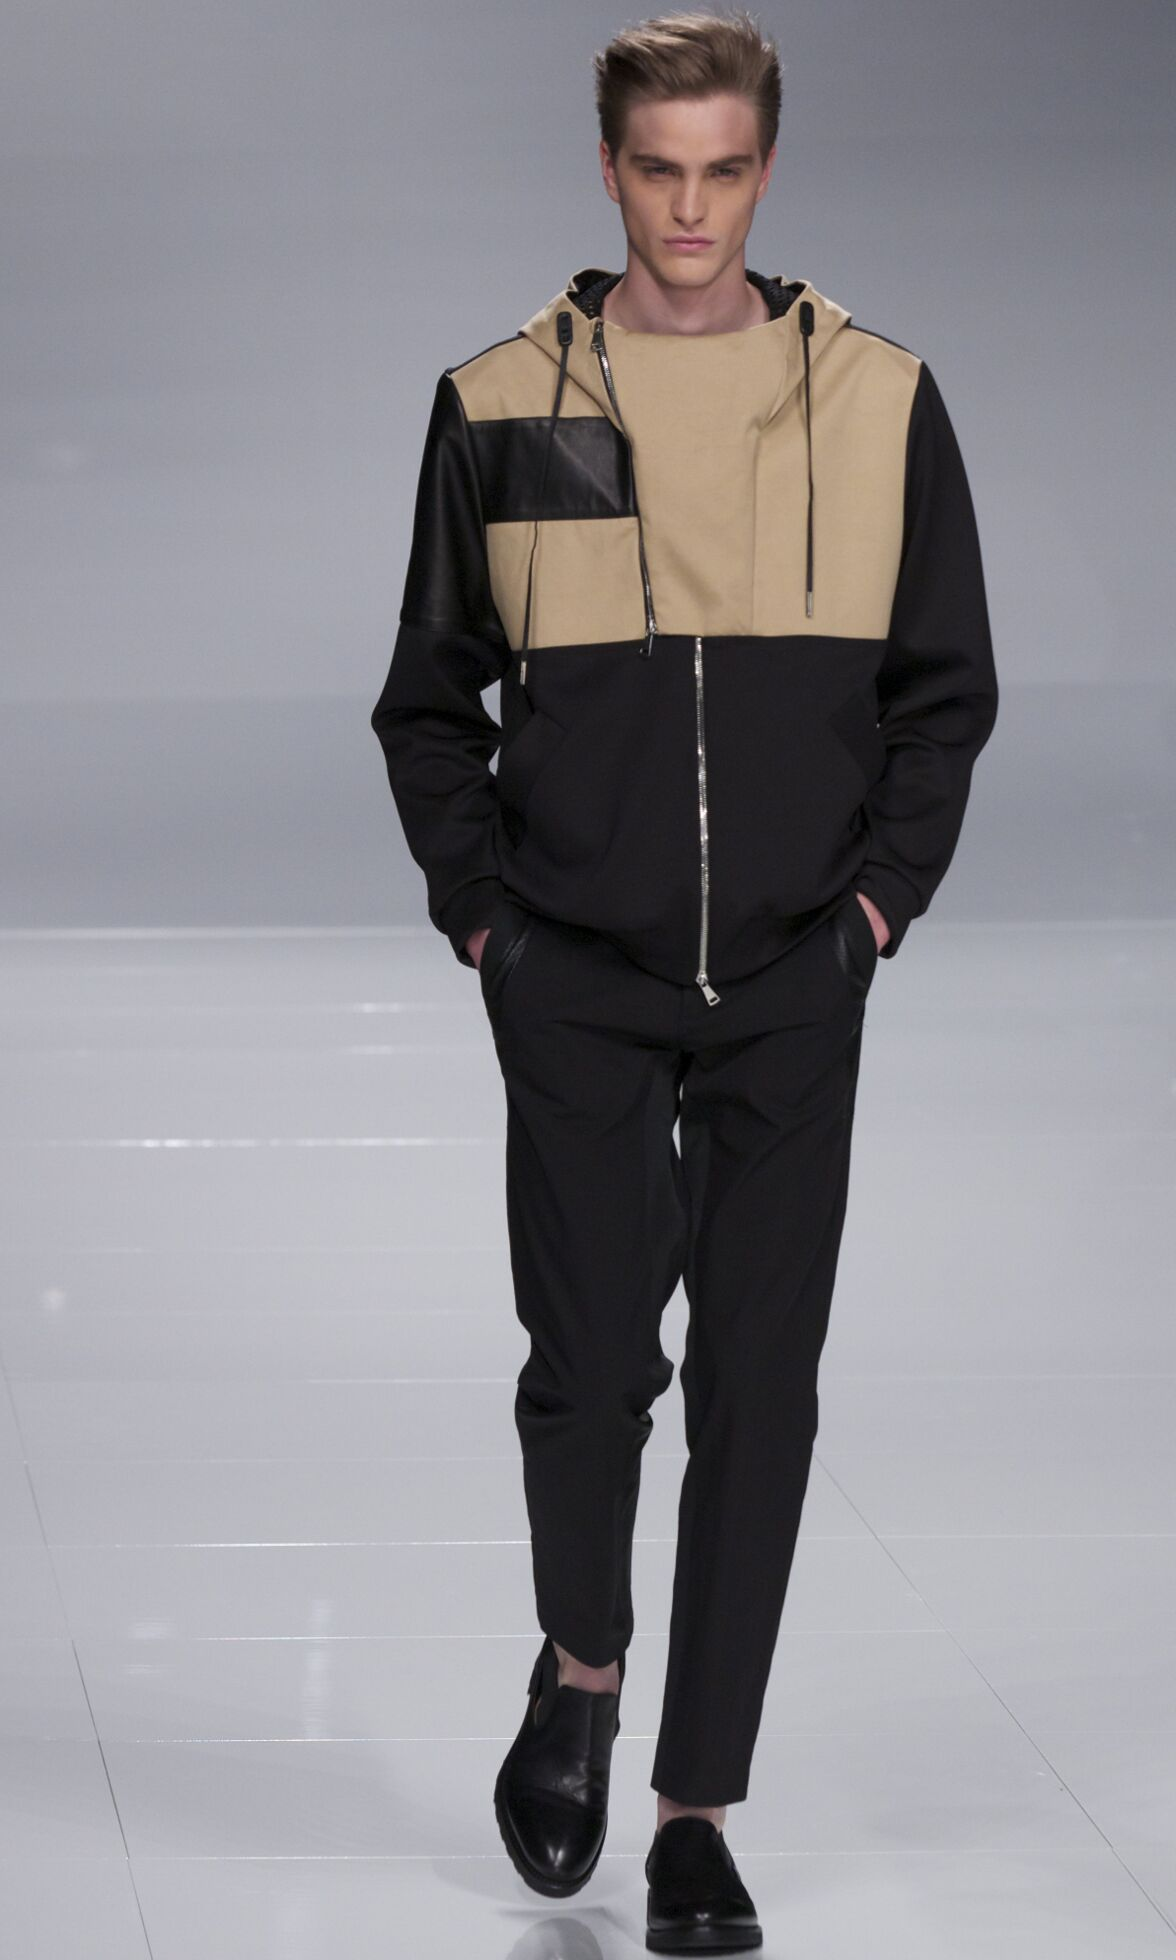 ICEBERG SPRING SUMMER 2014 MENS COLLECTION  The Skinny Beep